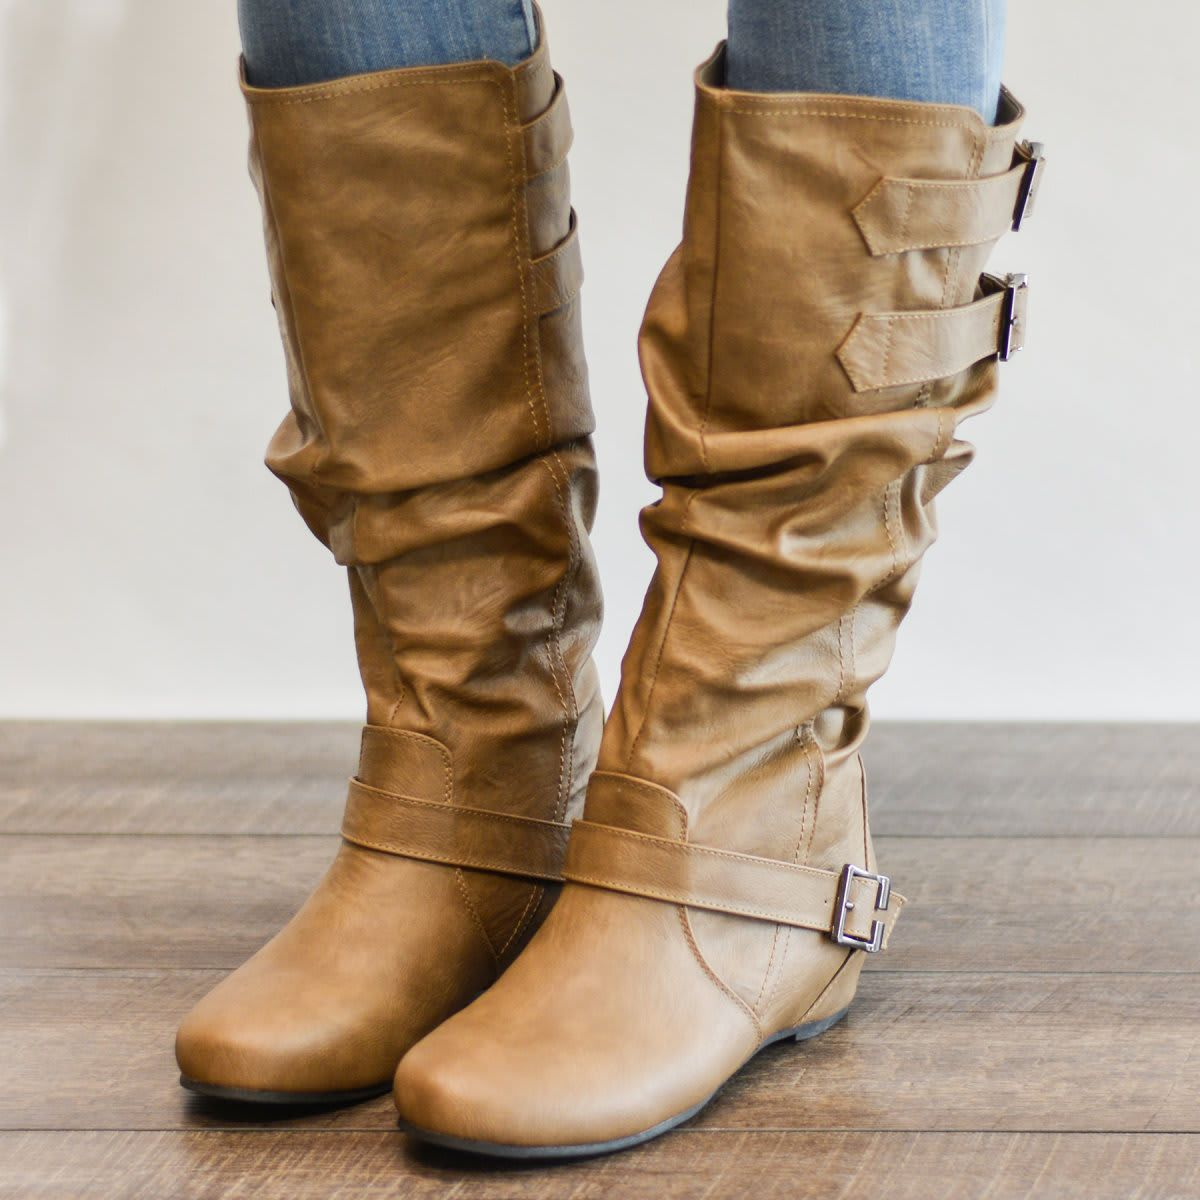 Buckle Slouch Low Wedge Boot Wide Calf Options Calf Boots Wide Calf Boots Mid Calf Boots